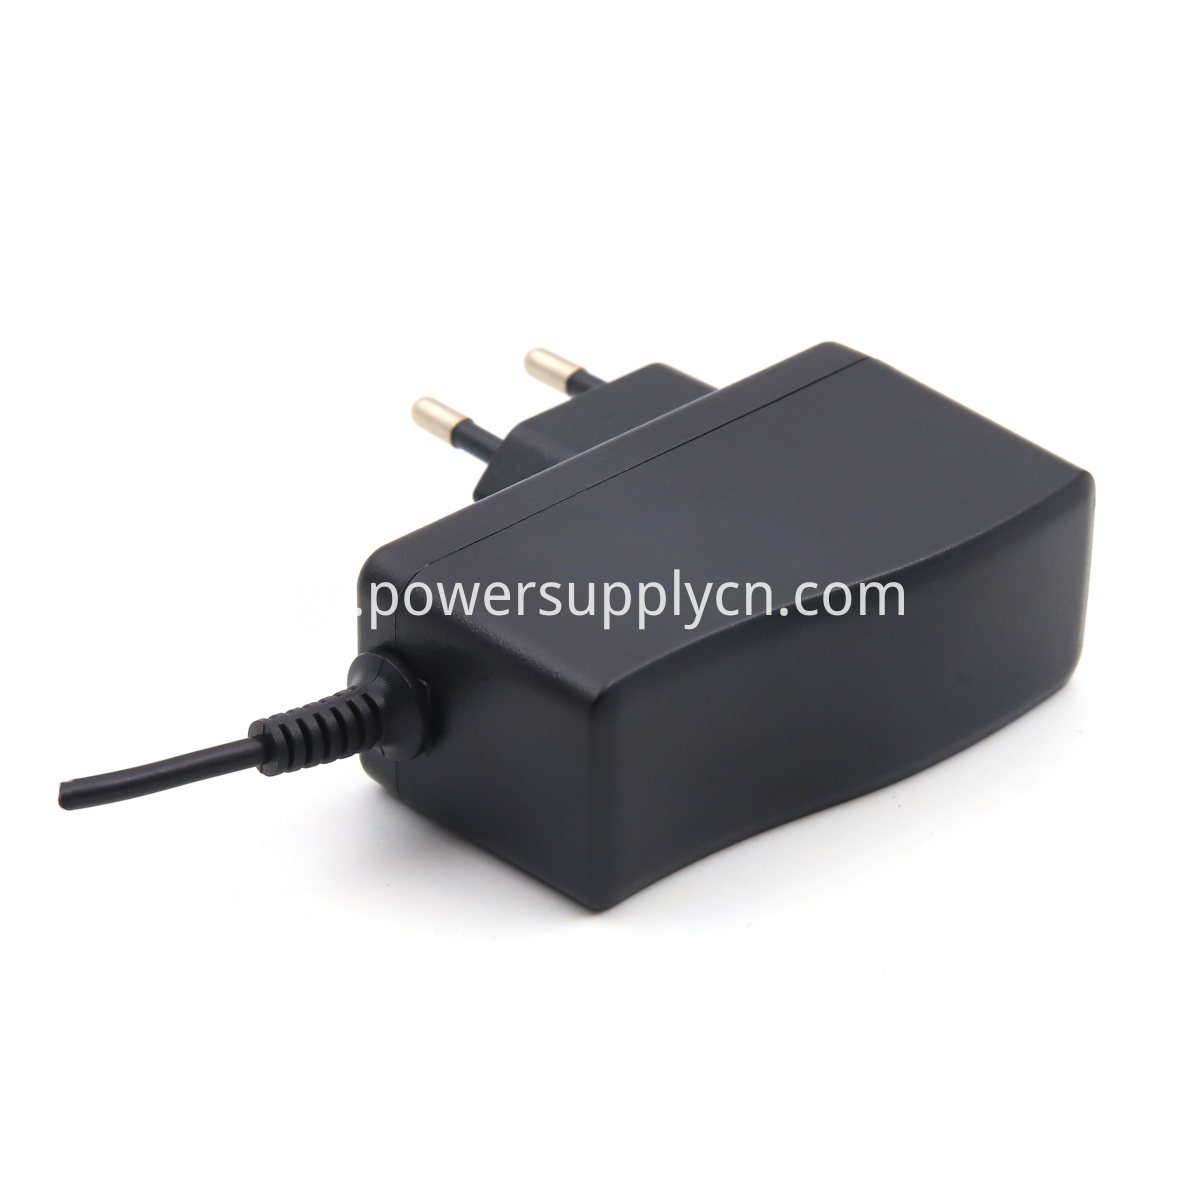 12v 1 5a 24v 0 75a 24w Wall Mount Power Adapter